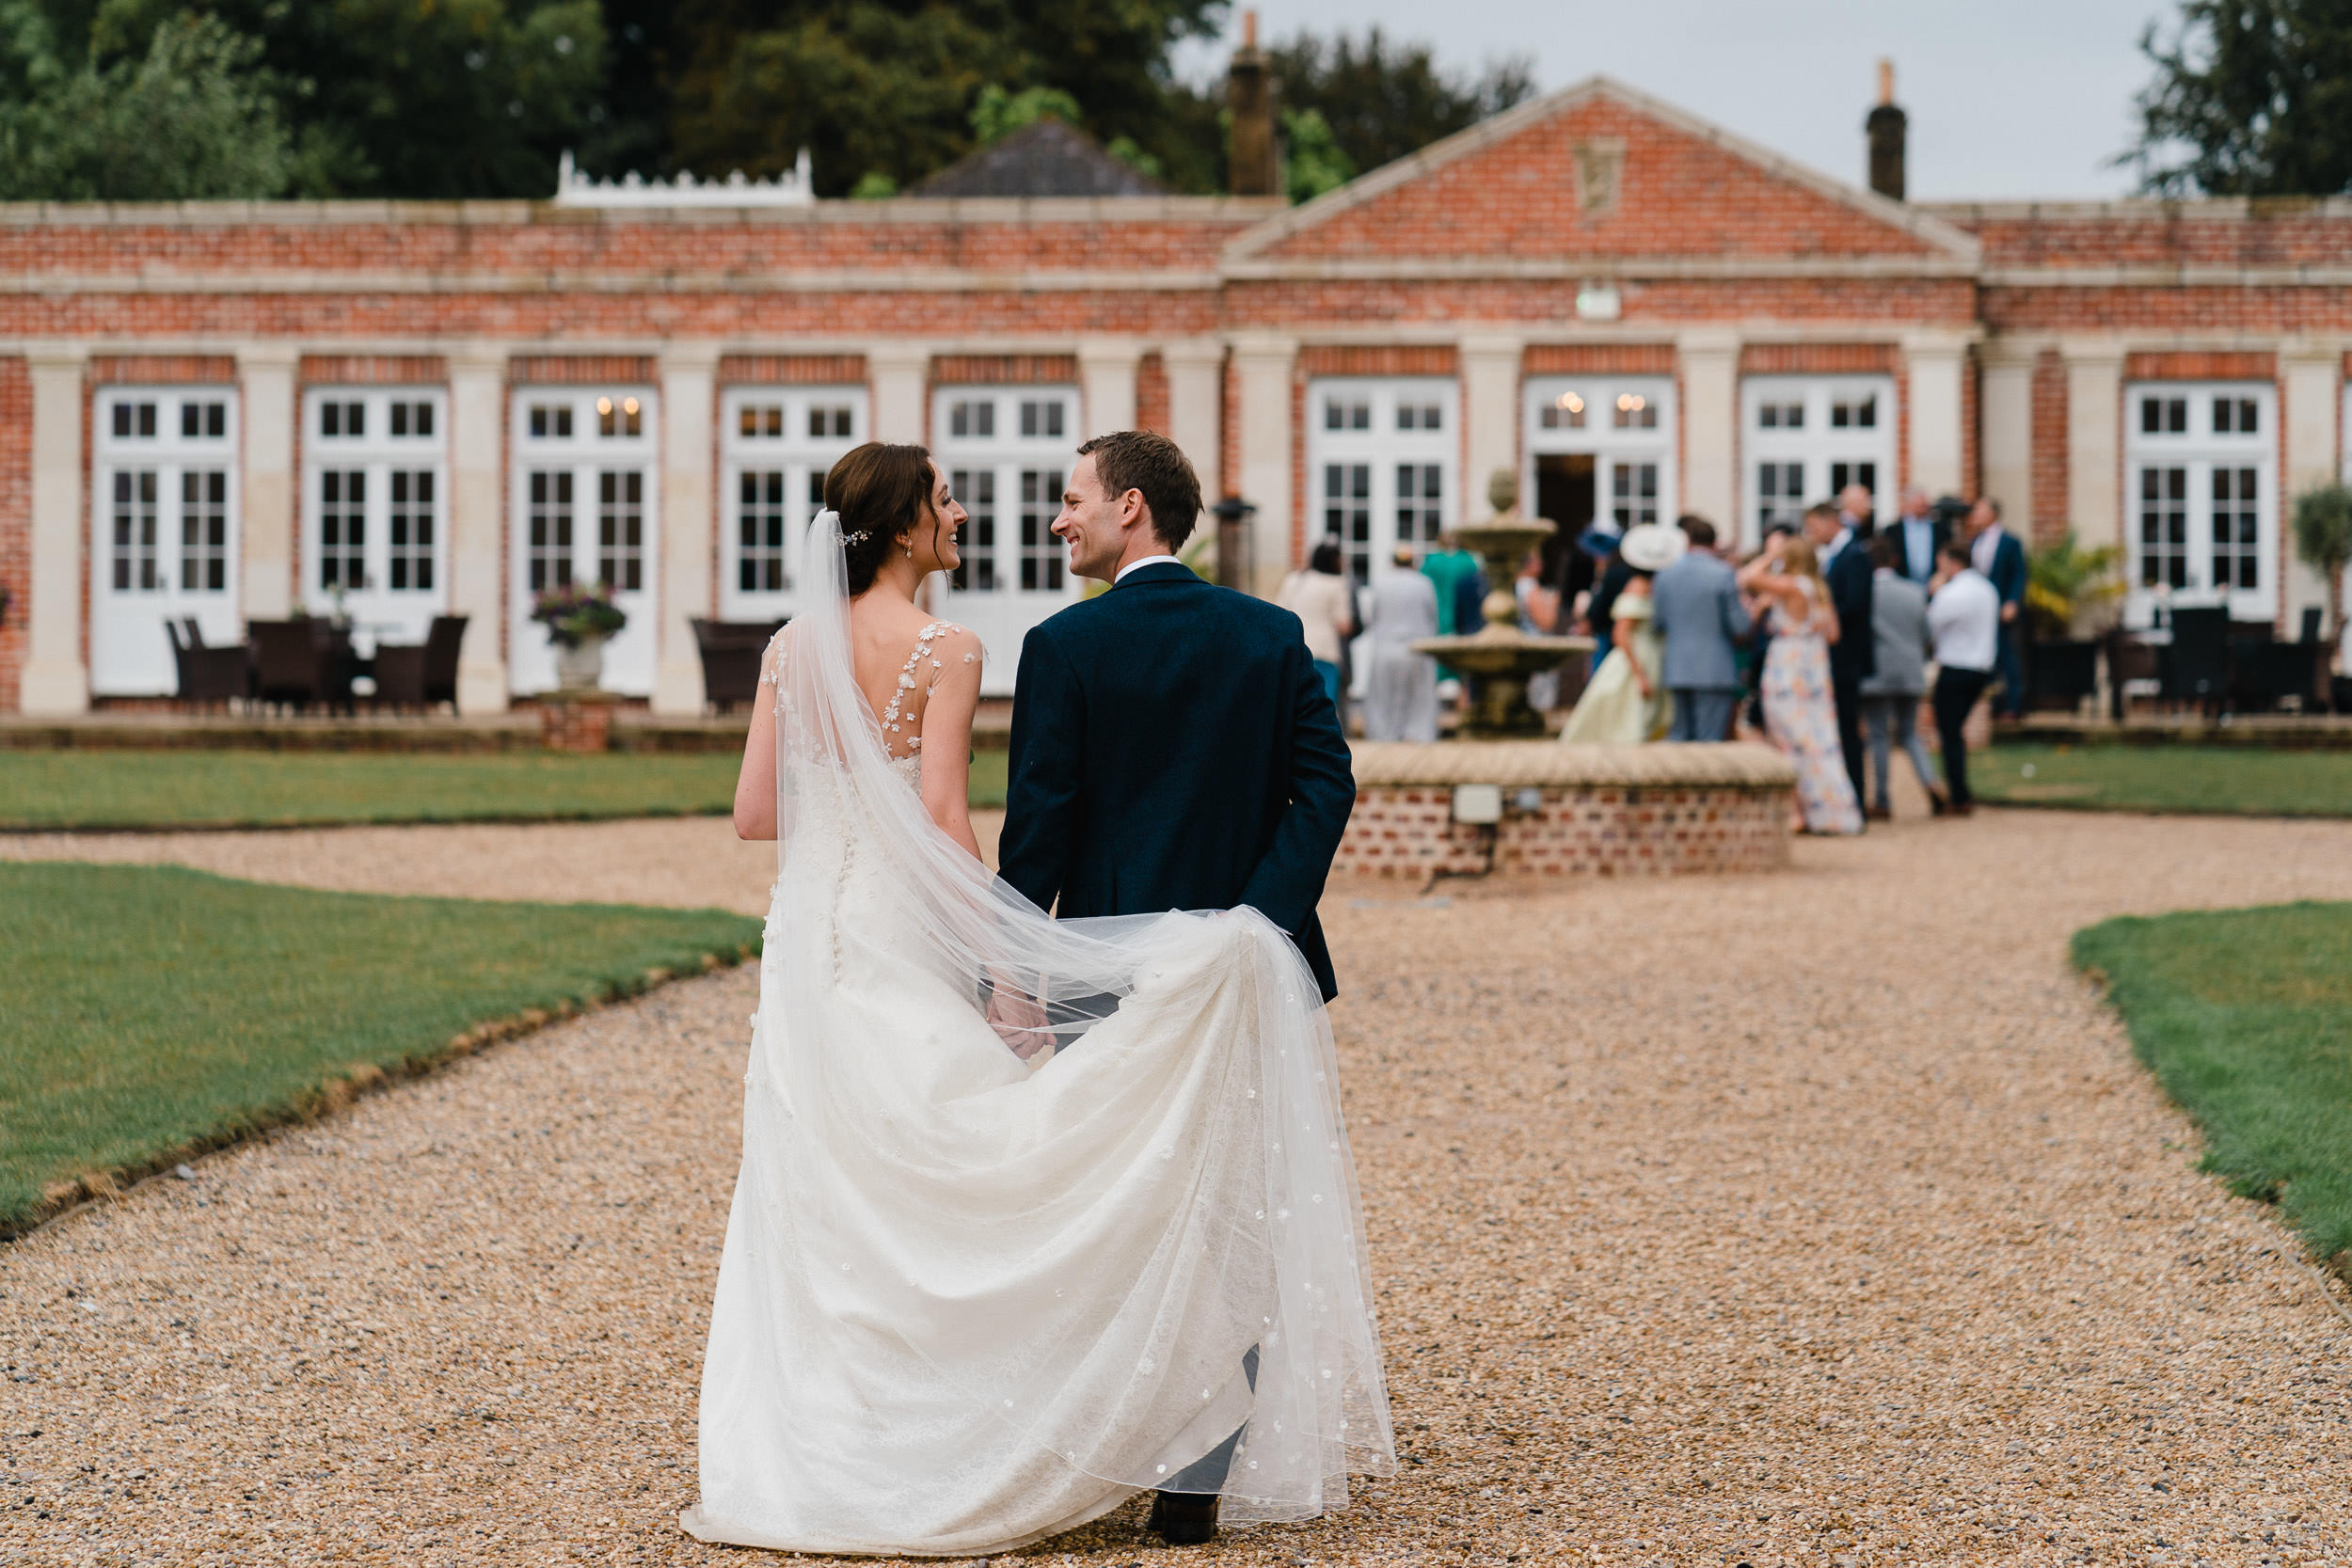 Orchardleigh Estate Wedding - Bride and Groom in front of the Orangery